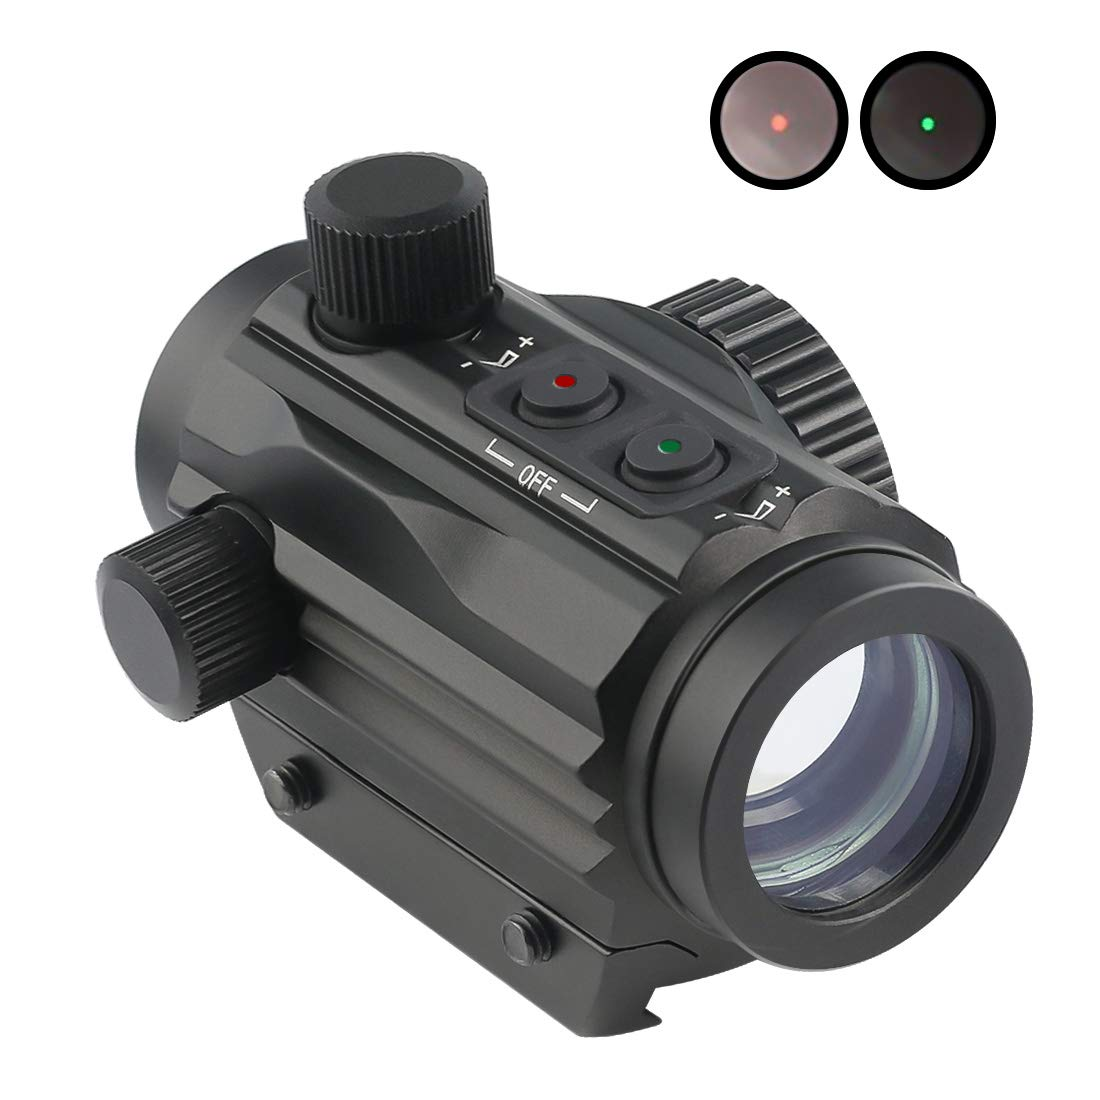 Twod 1x22mm Red Dot Sight Dual Color Illuminated Compact Micro Red/Green Reticle with Circle Dot 5 MOA Fits 21mm Picatinny Rail Mount